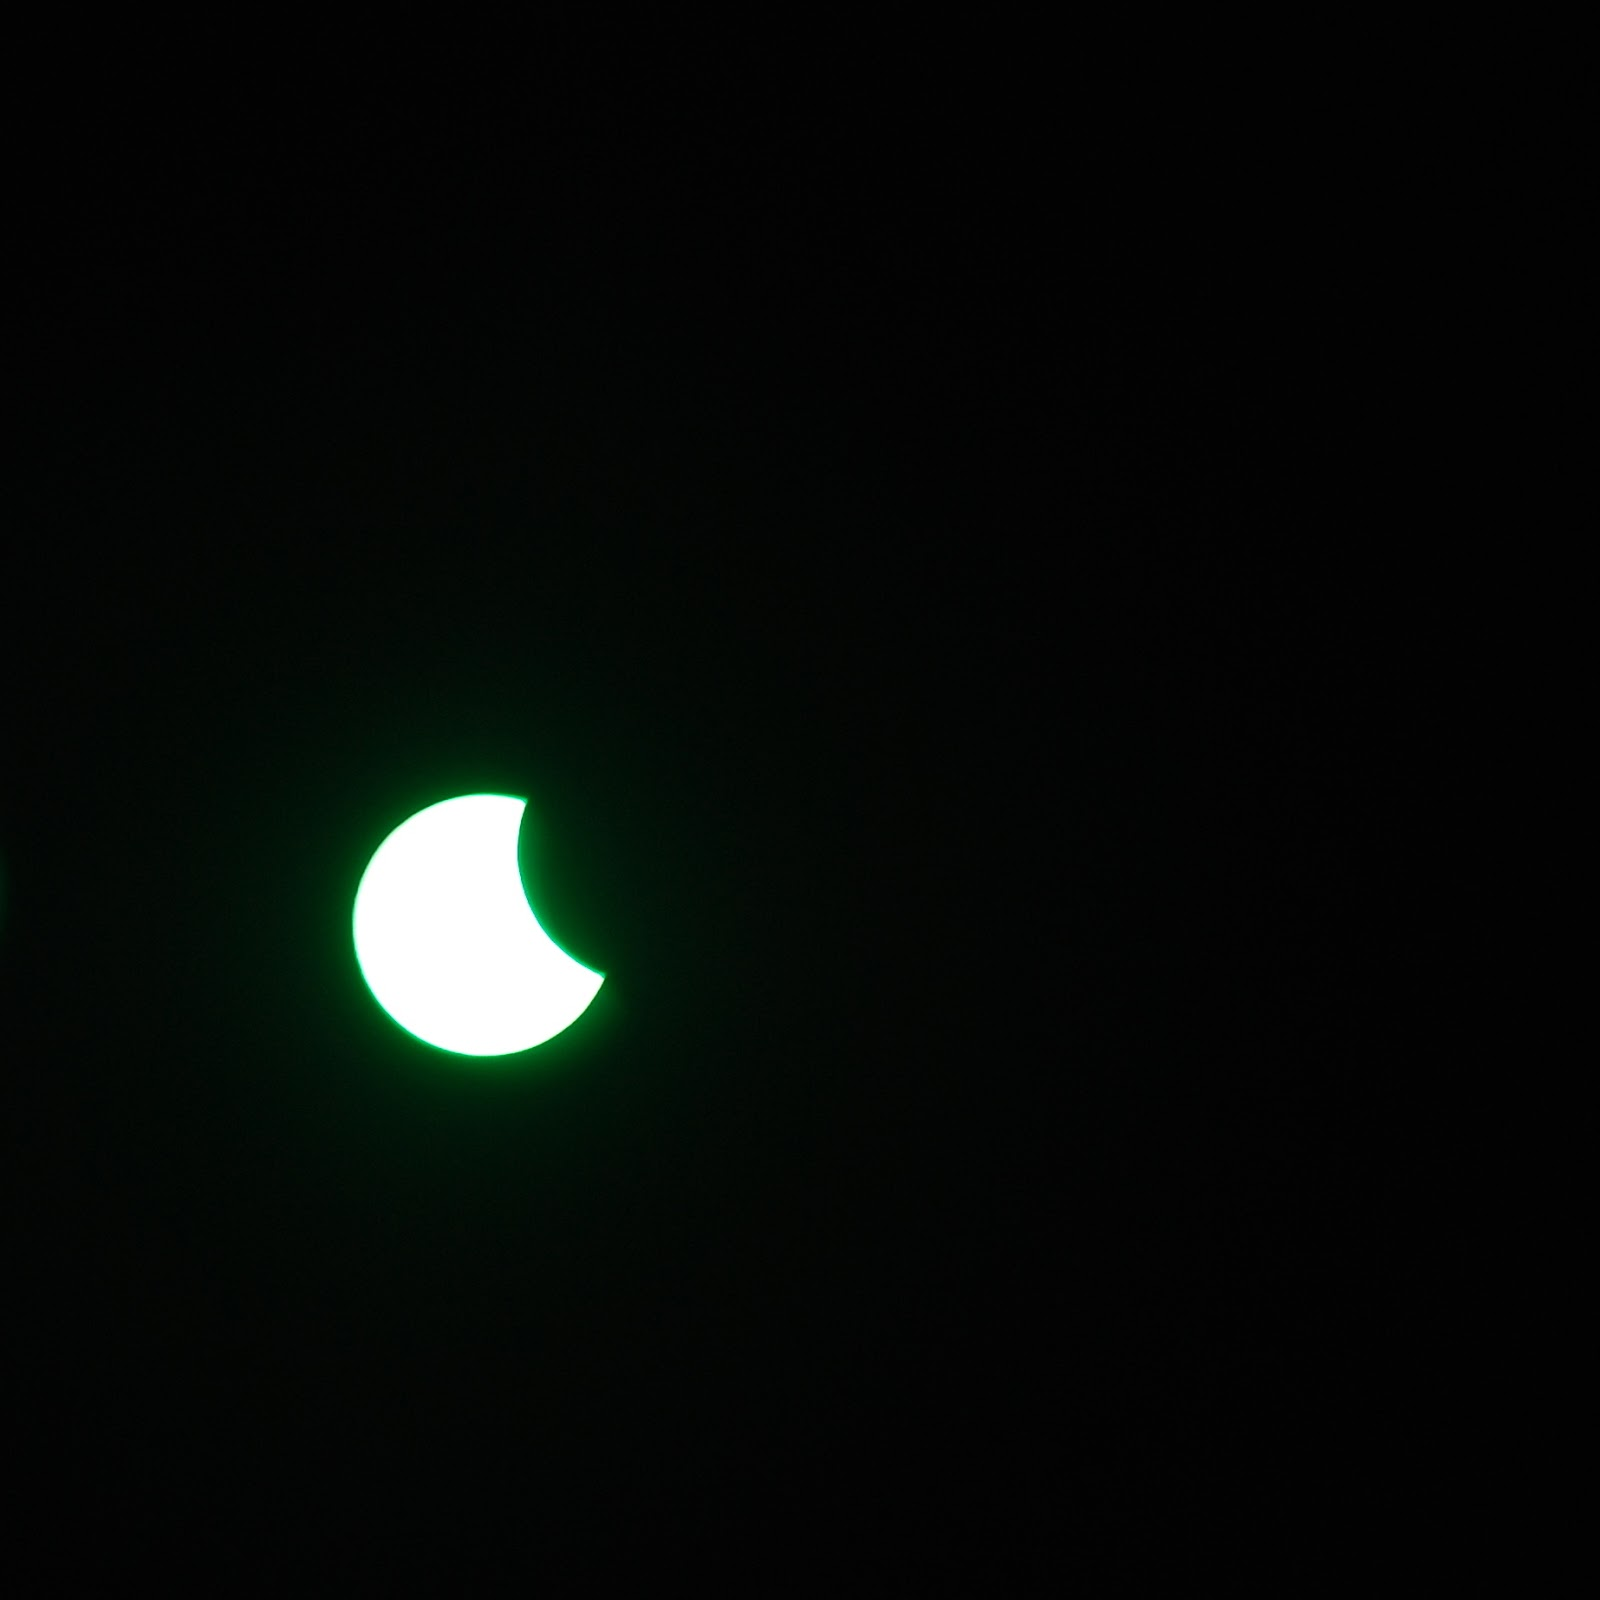 20.03.2015 solar eclipse. Poland